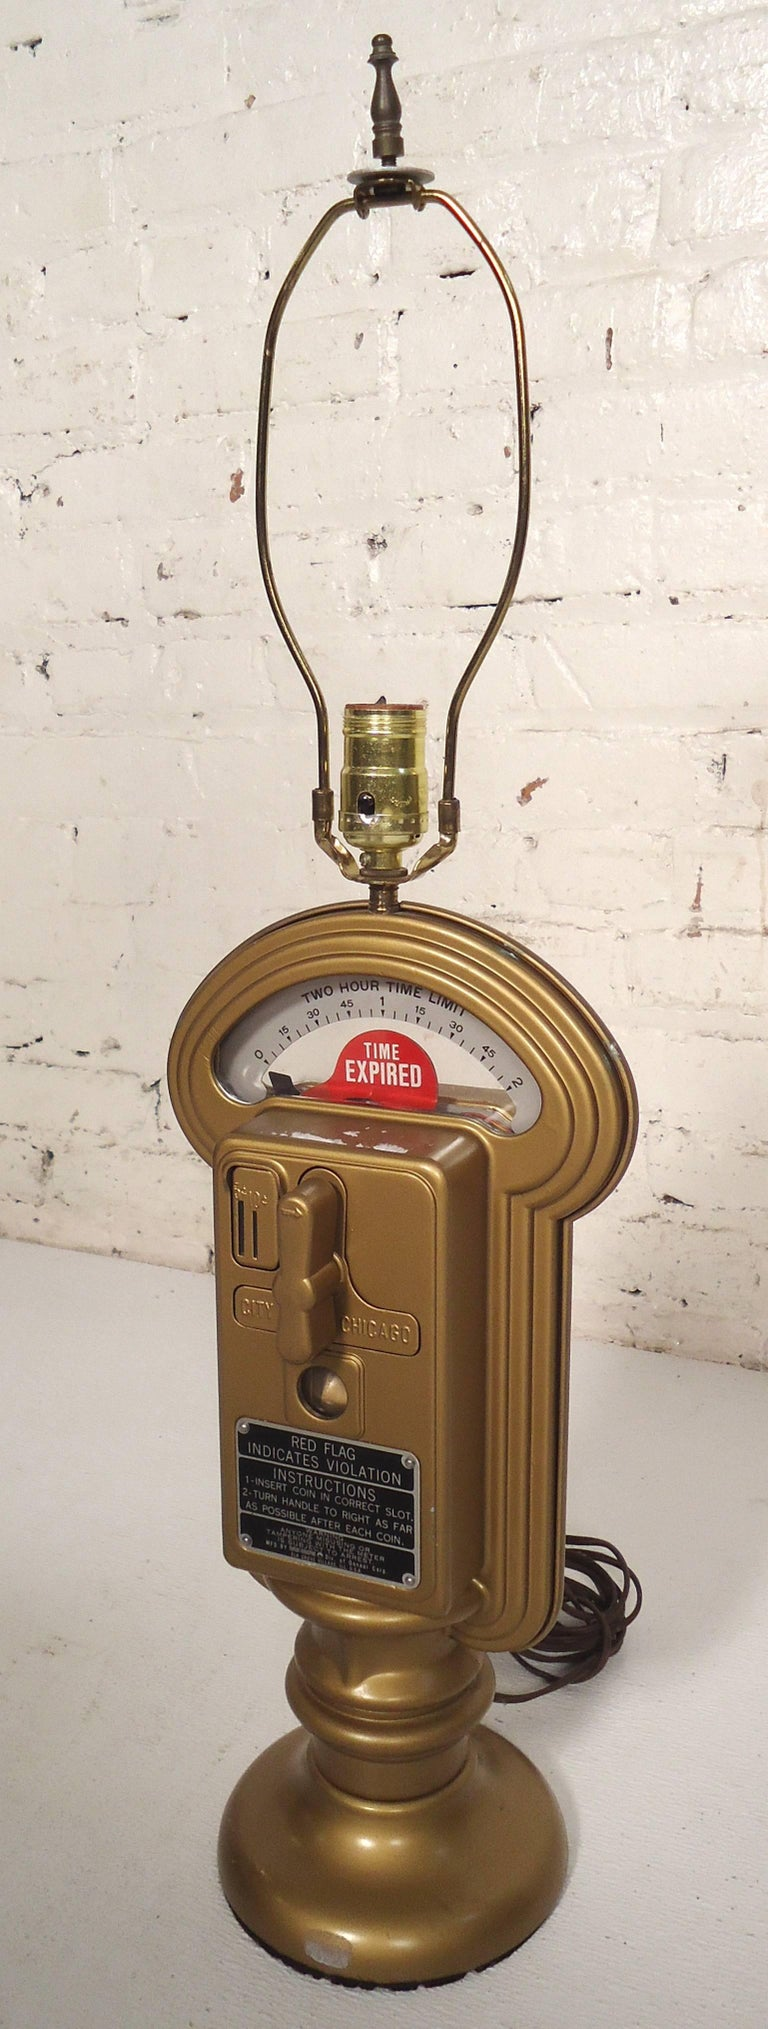 This vintage Duncan Miller city of Chicago parking meter table lamp is very unique, features many parking meter attributes, a heavy body, made from a real Chicago parking meter.